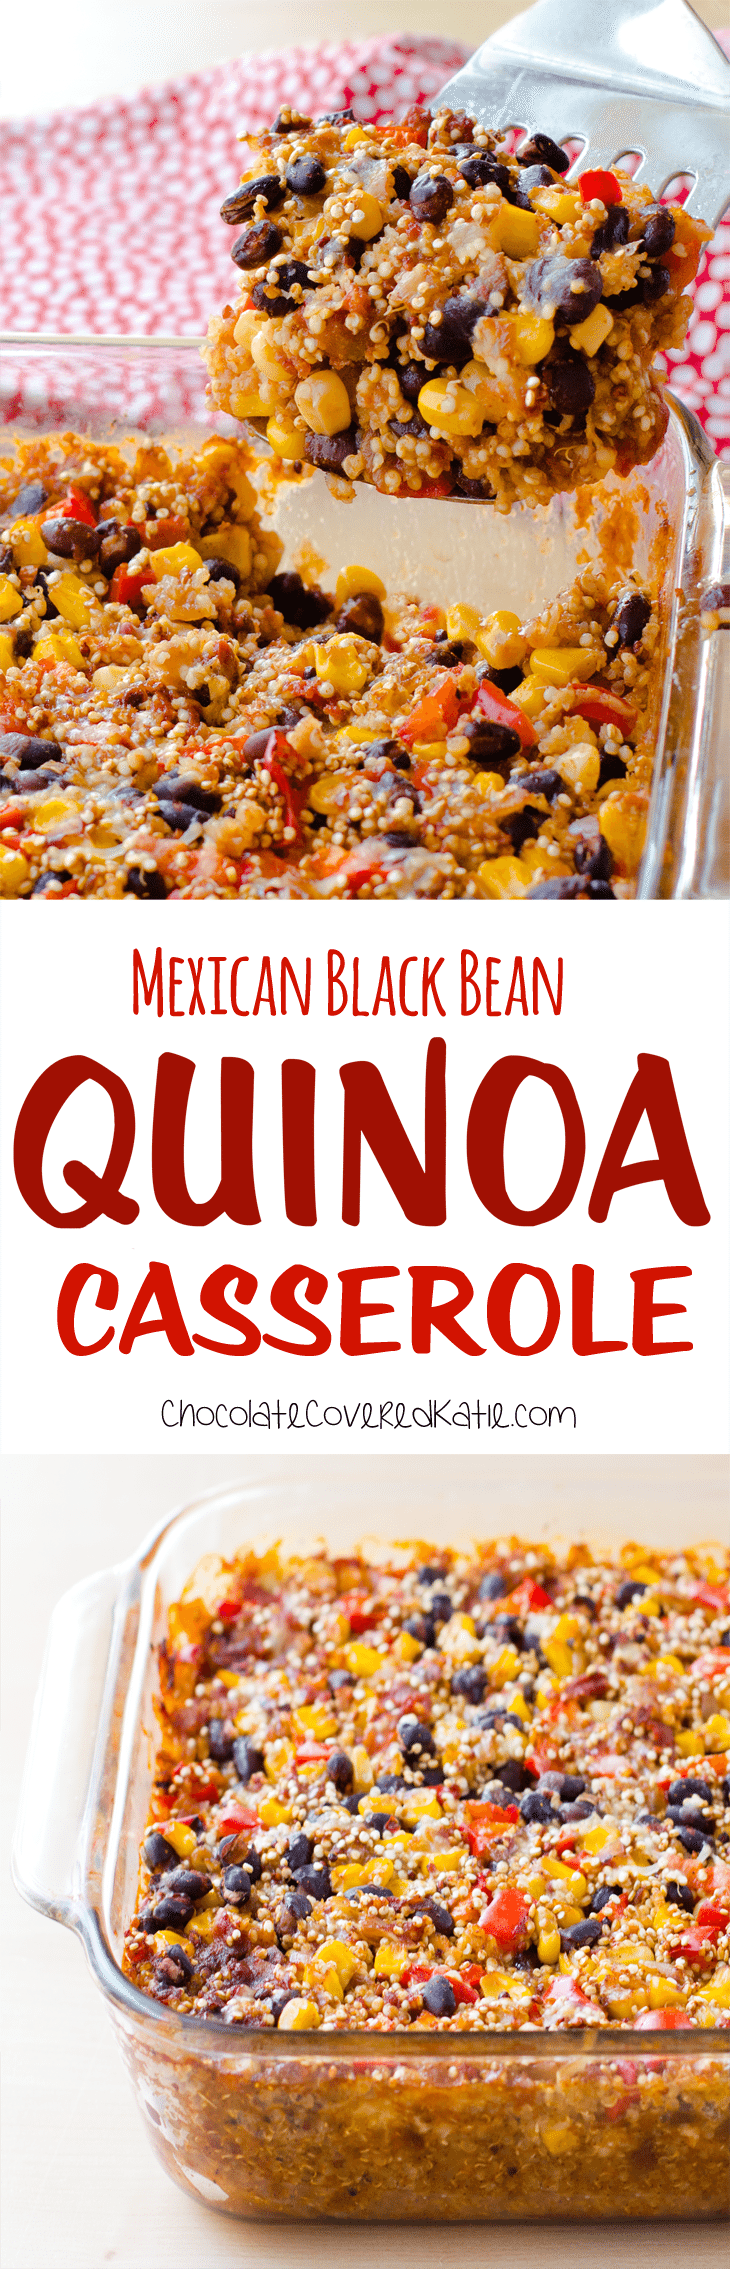 Super easy to make & healthy quinoa casserole, just mix the ingredients together and throw it in the oven! Full recipe: https://chocolatecoveredkatie.com/2016/09/19/quinoa-casserole-mexican-black-bean/ @choccoveredkt